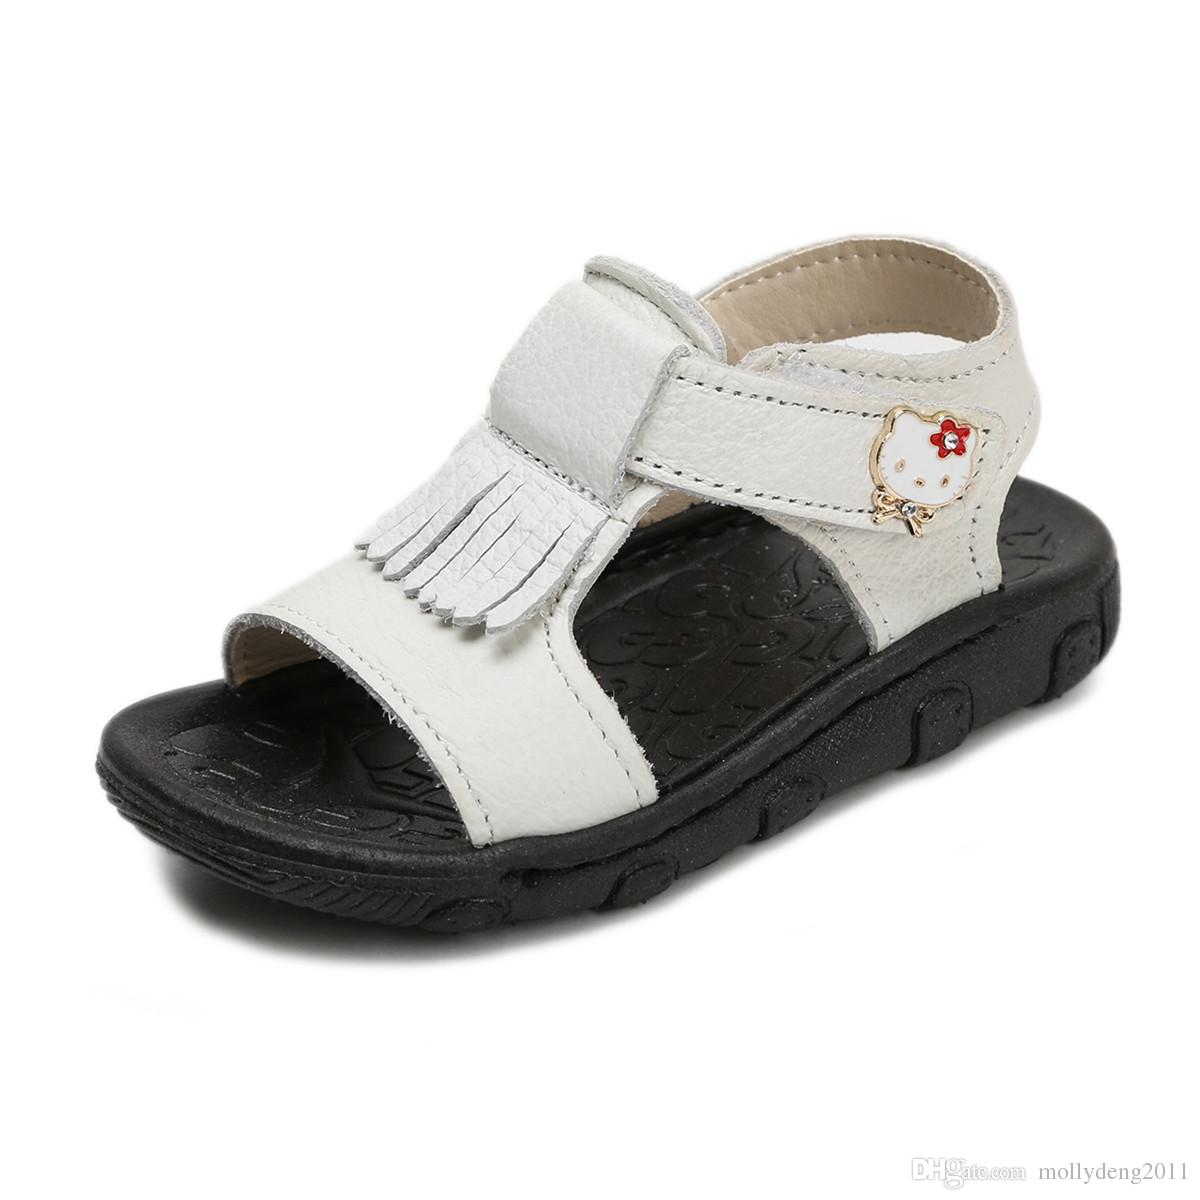 a9ea50289 Hello Kitty Children Shoes Girls Sandals Summer Beach Genuine Leather  Toddler Baby Girl Sandals Soft Little Kids Sandals Manual Stitching Kid  Shoes Cheap ...